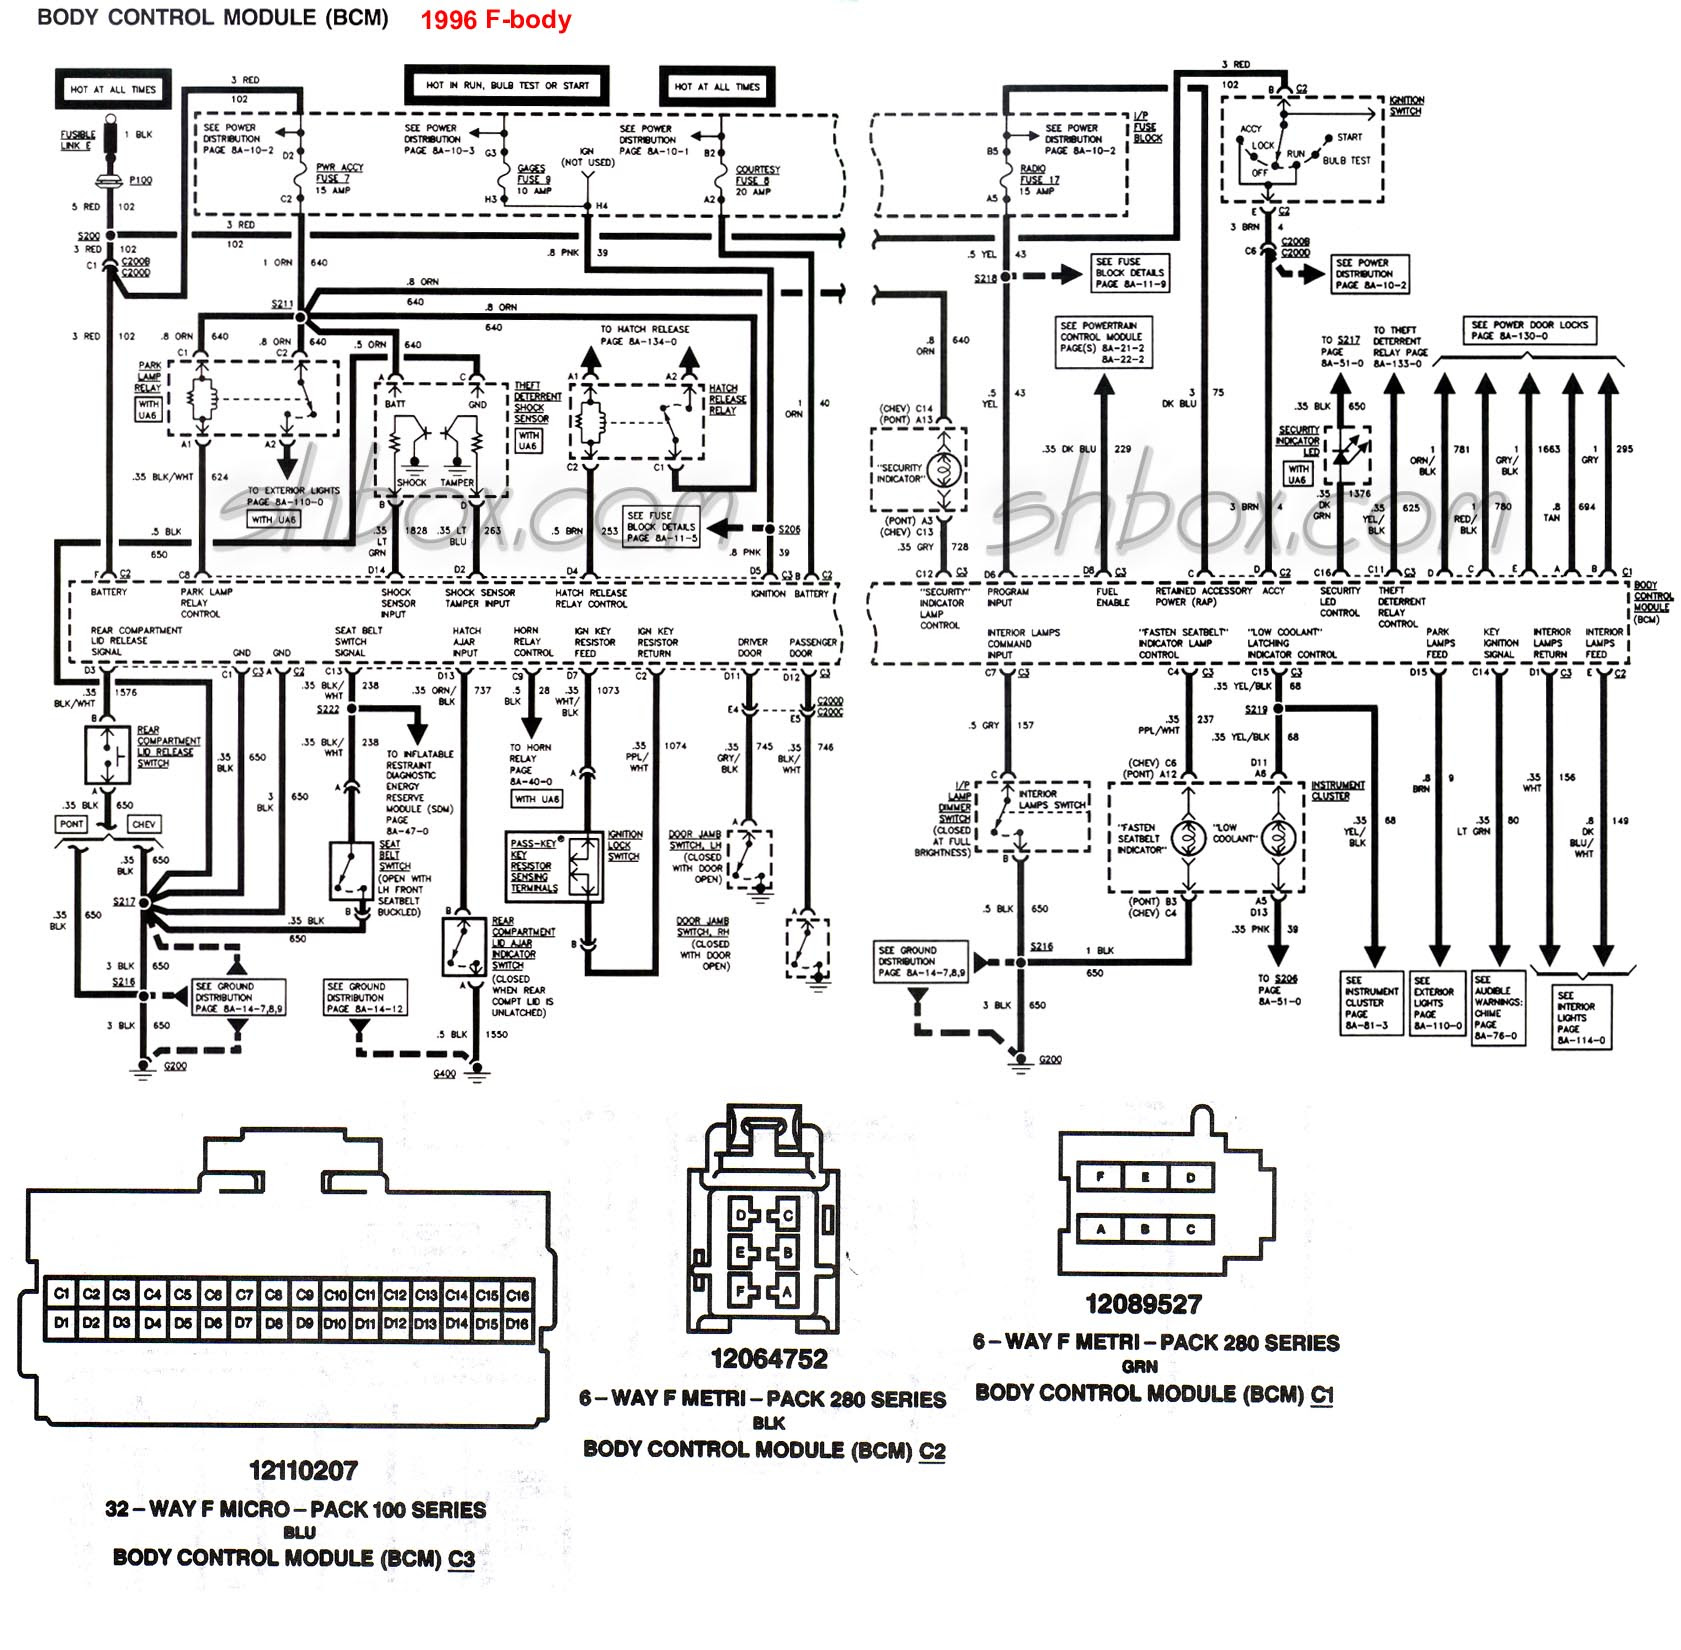 Wiring Diagram: 10 1997 Dodge Ram 1500 Wiring Diagram